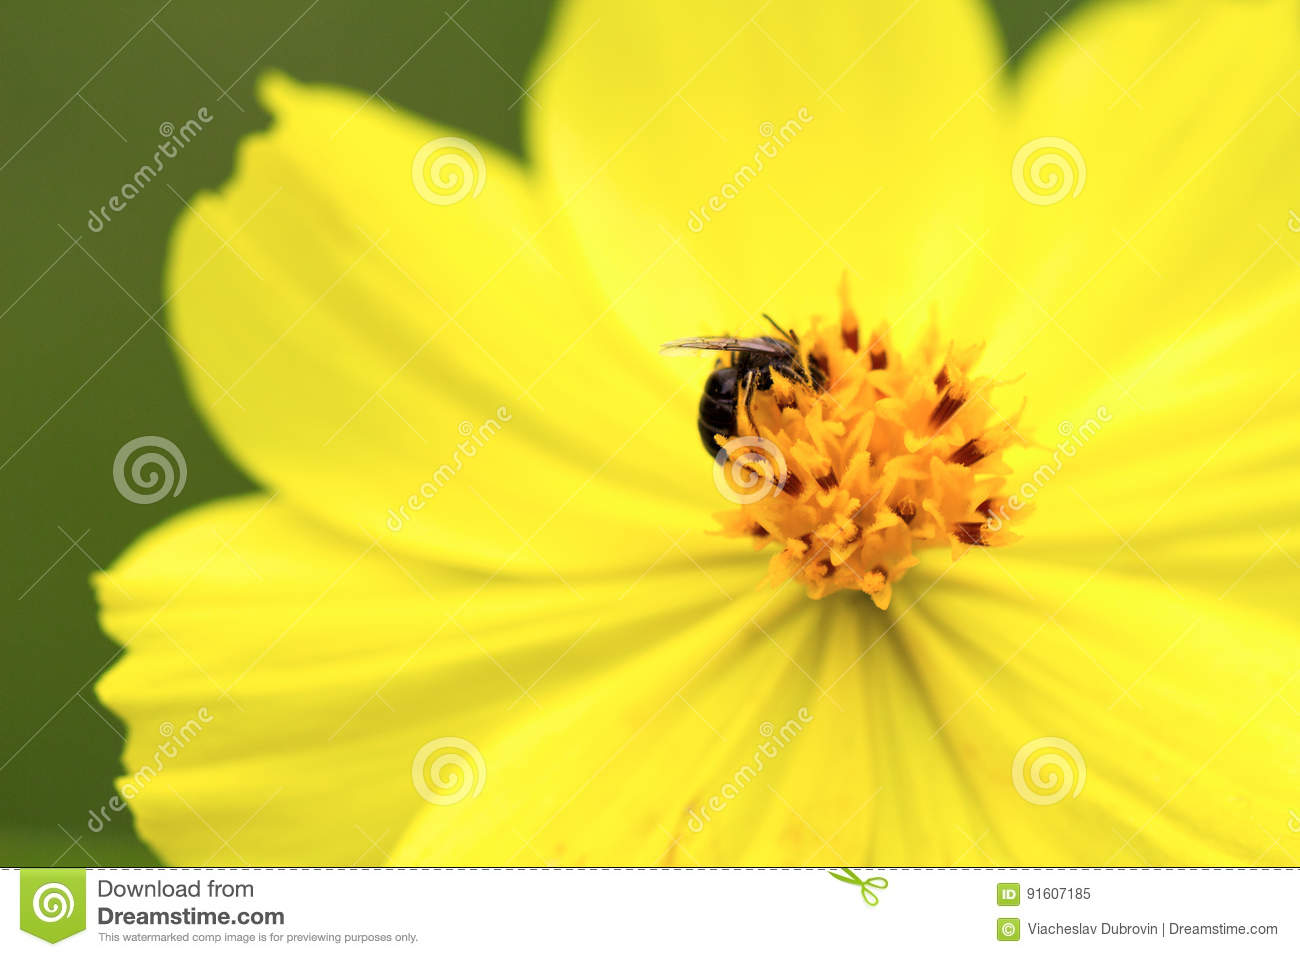 Yellow Tropical Flower With Small Fly In Center Flower Stamen And